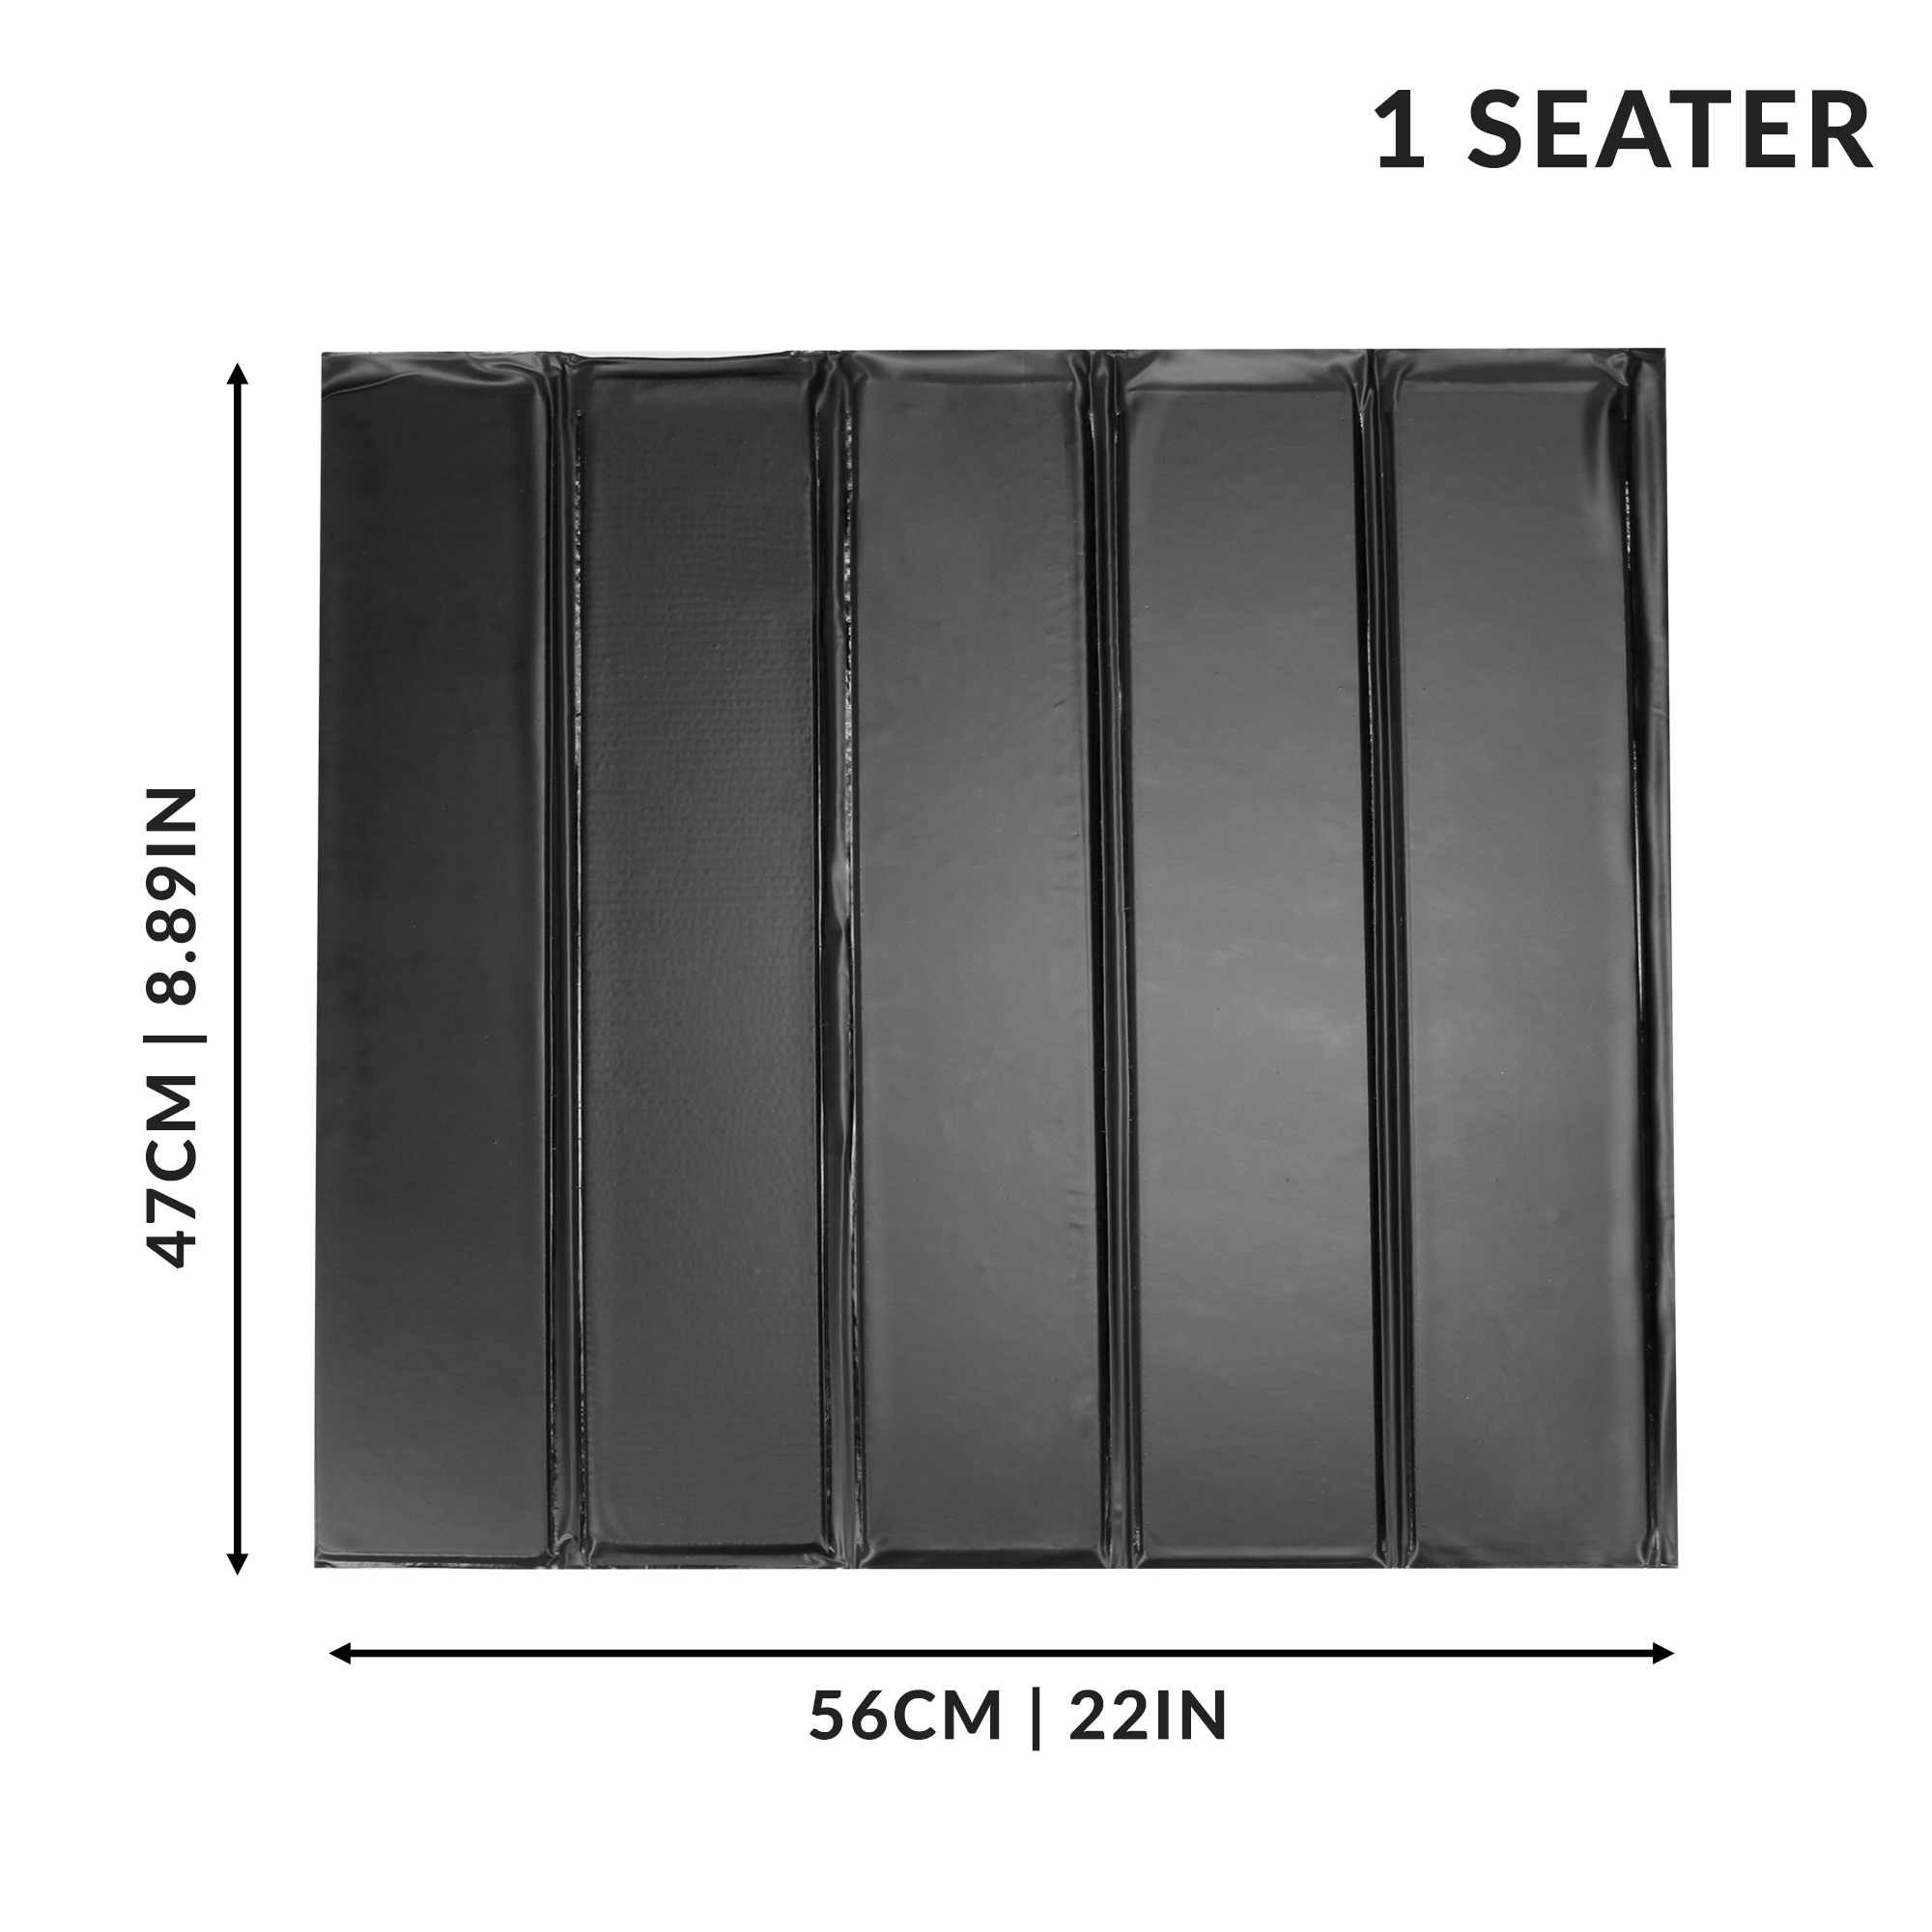 Sofa Protector BoardsSettee SupportsFurniture Damage ProtectorM/&W